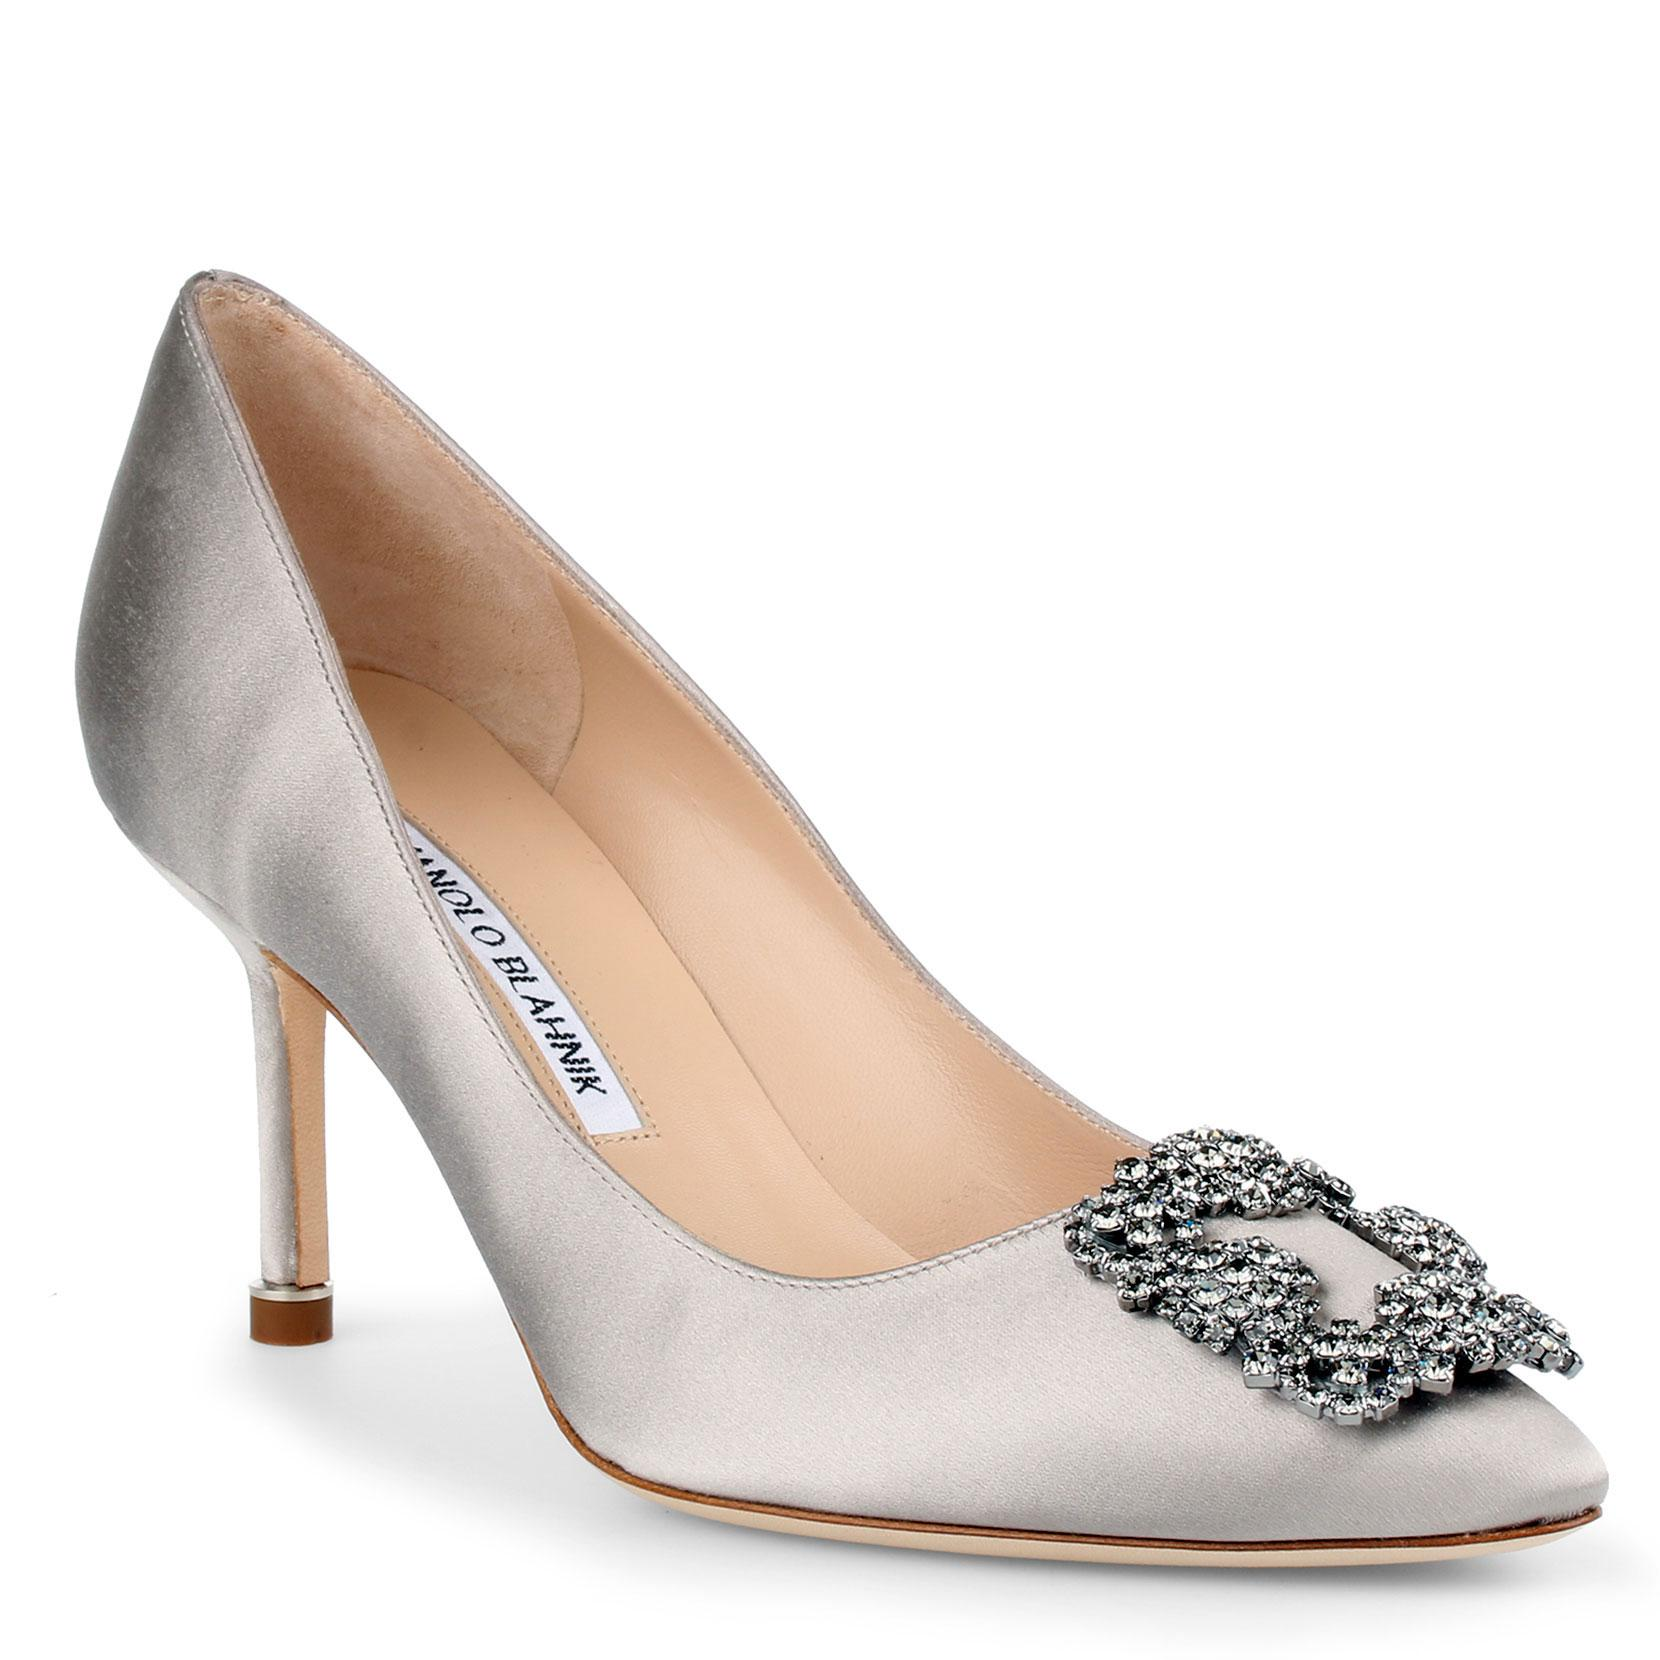 Hangisi 105 Satin Silver Grey Pumps Manolo Blahnik Manchester Great Sale Online Free Shipping Sale Cheap Newest Classic Sale Online pxrQYBksS